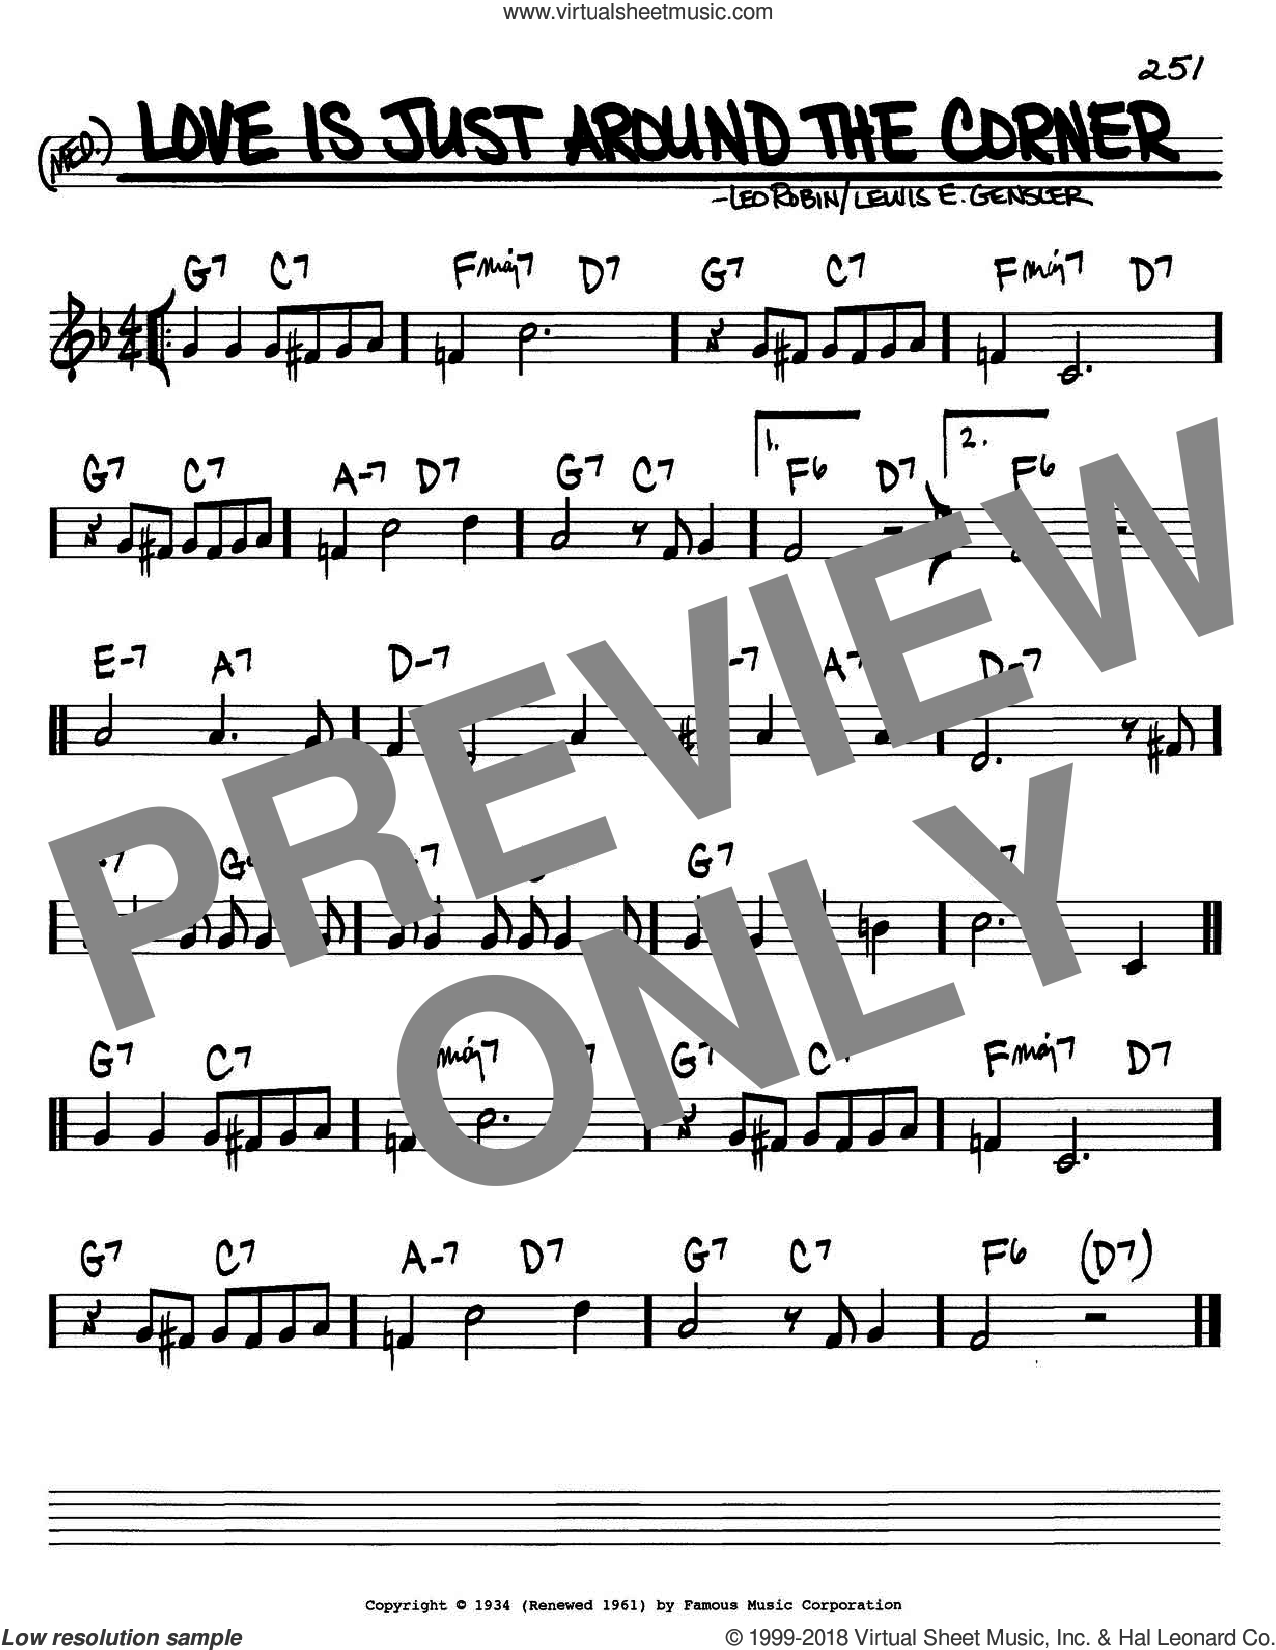 Love Is Just Around The Corner sheet music for voice and other instruments (C) by Lewis E. Gensler